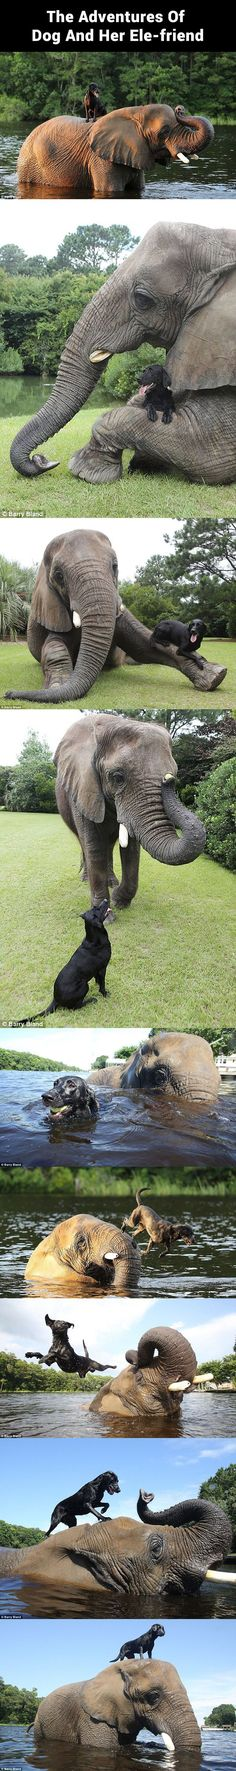 Elephant plays fetch with her puppy pal! I want an elephant so bad!!